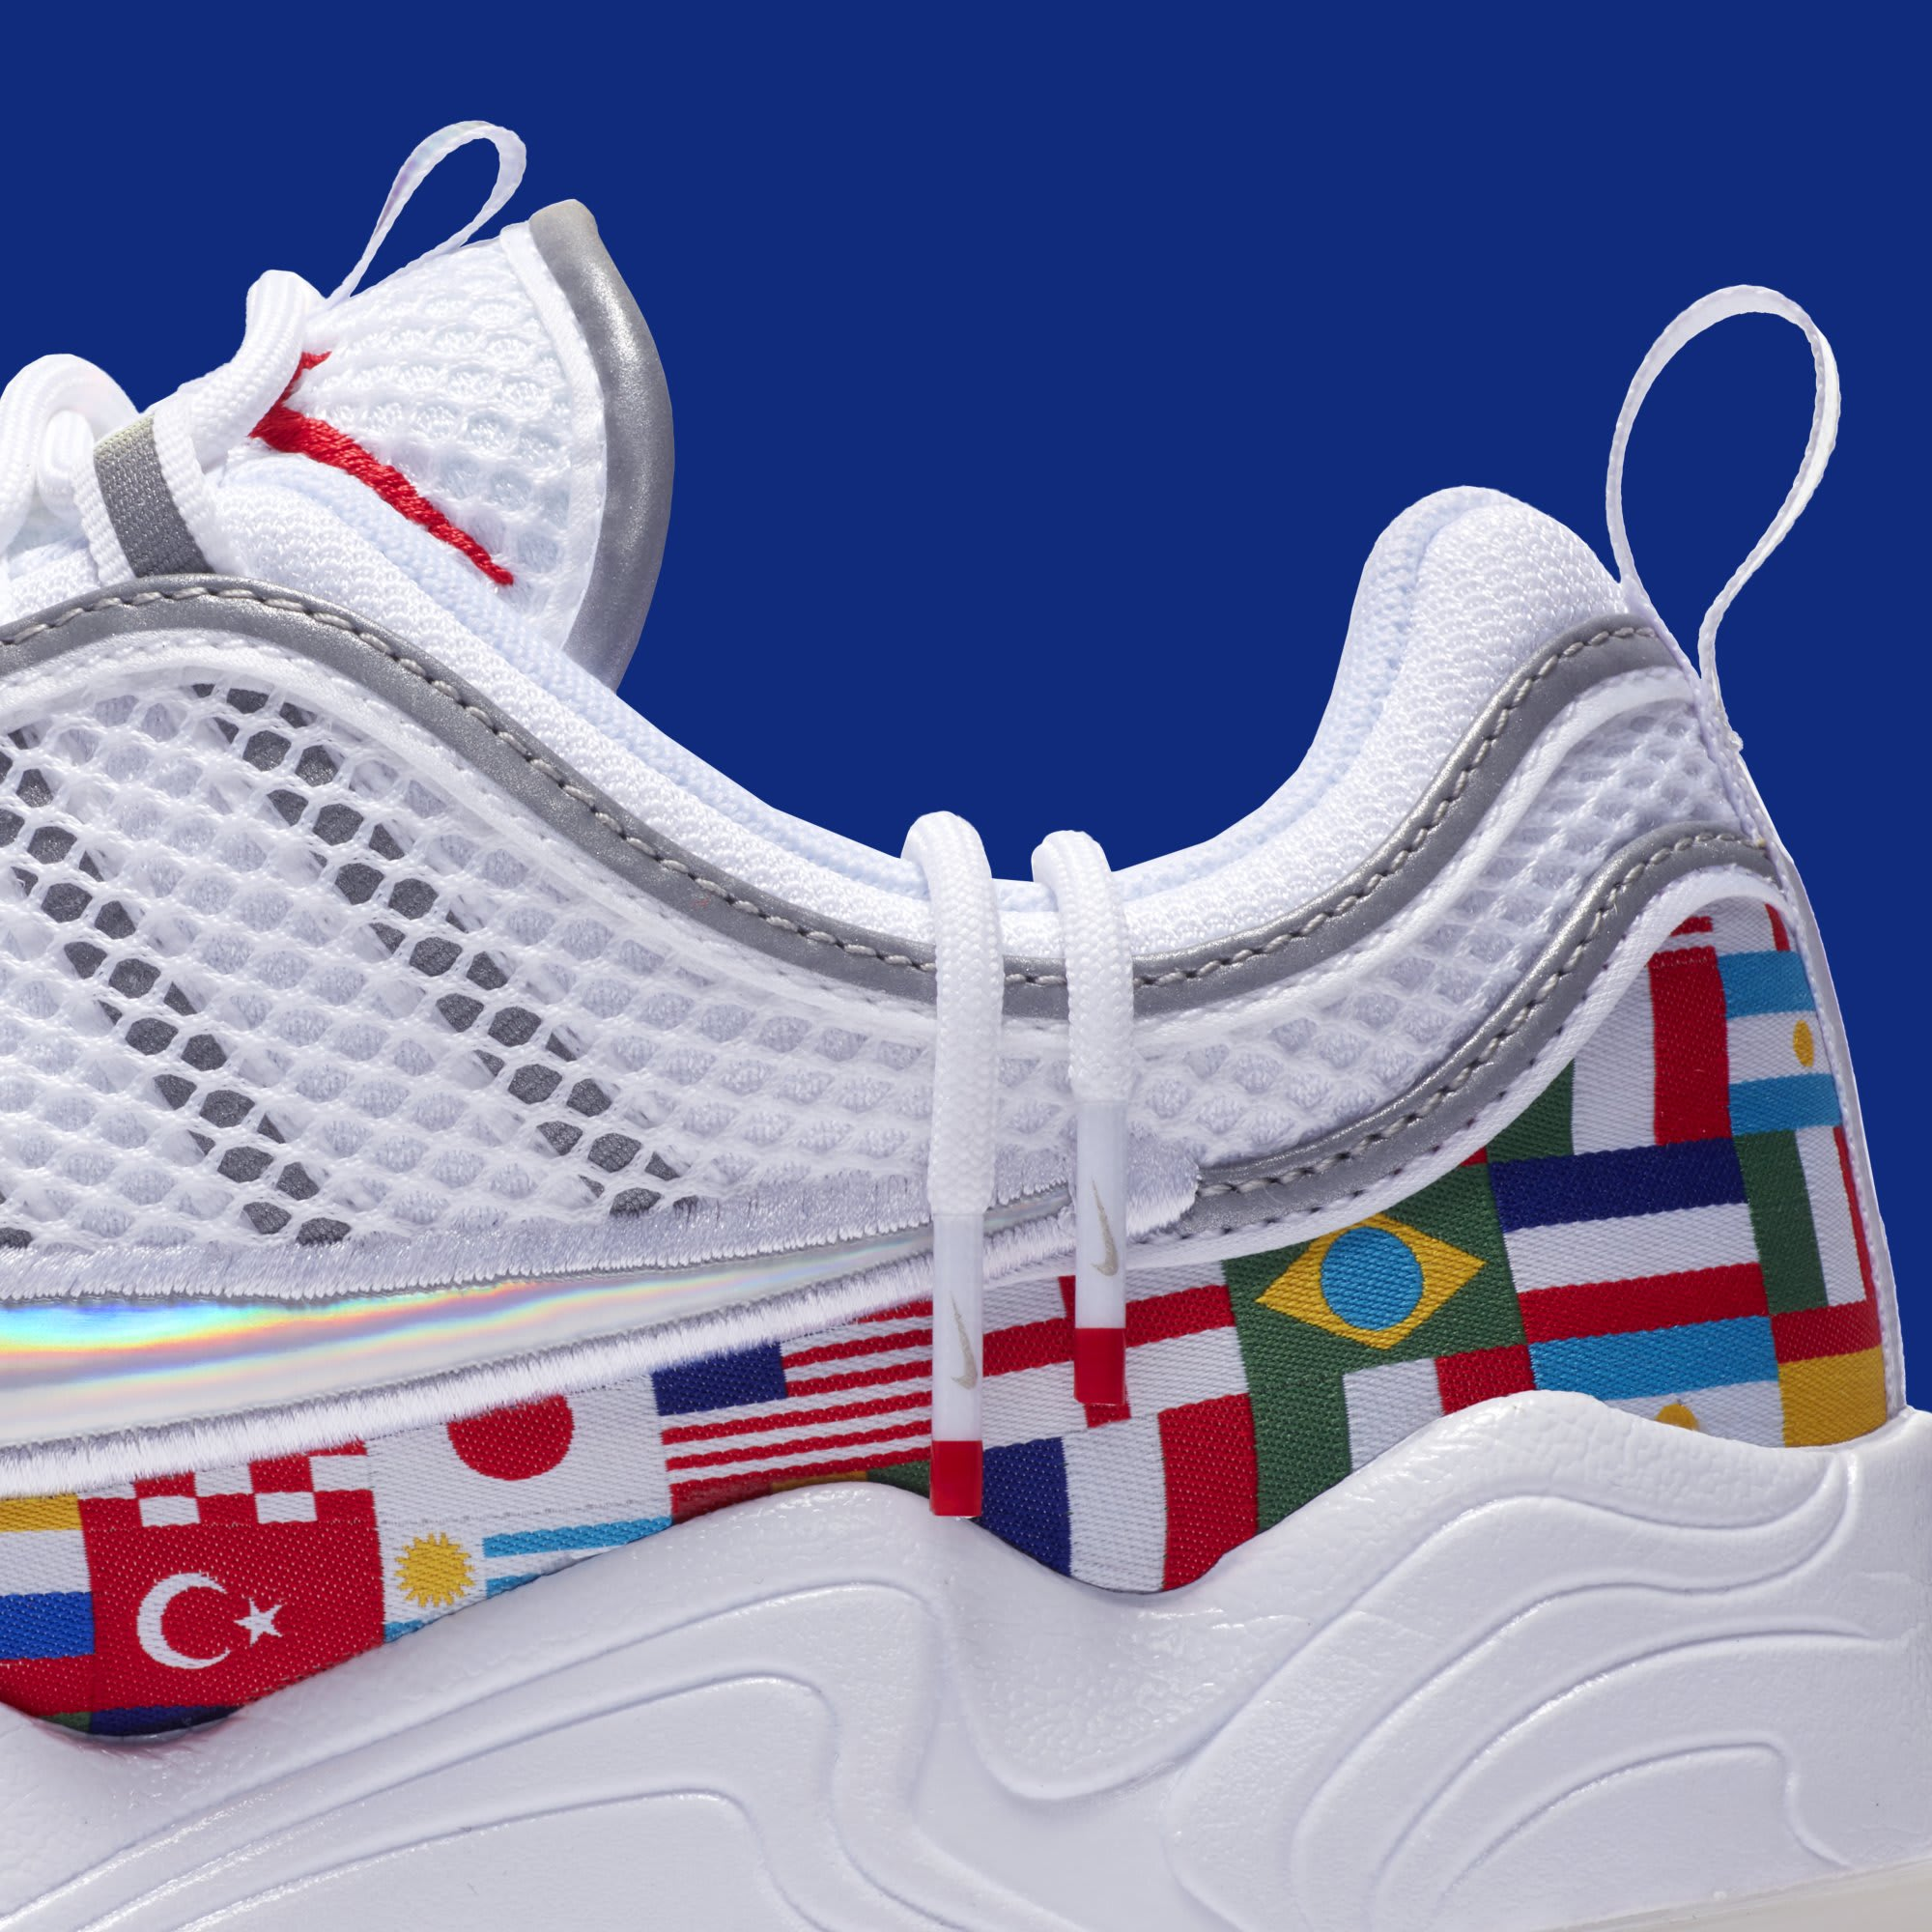 Nike Air Zoom Spiridon 'One World' AO5121-100 (Detail)